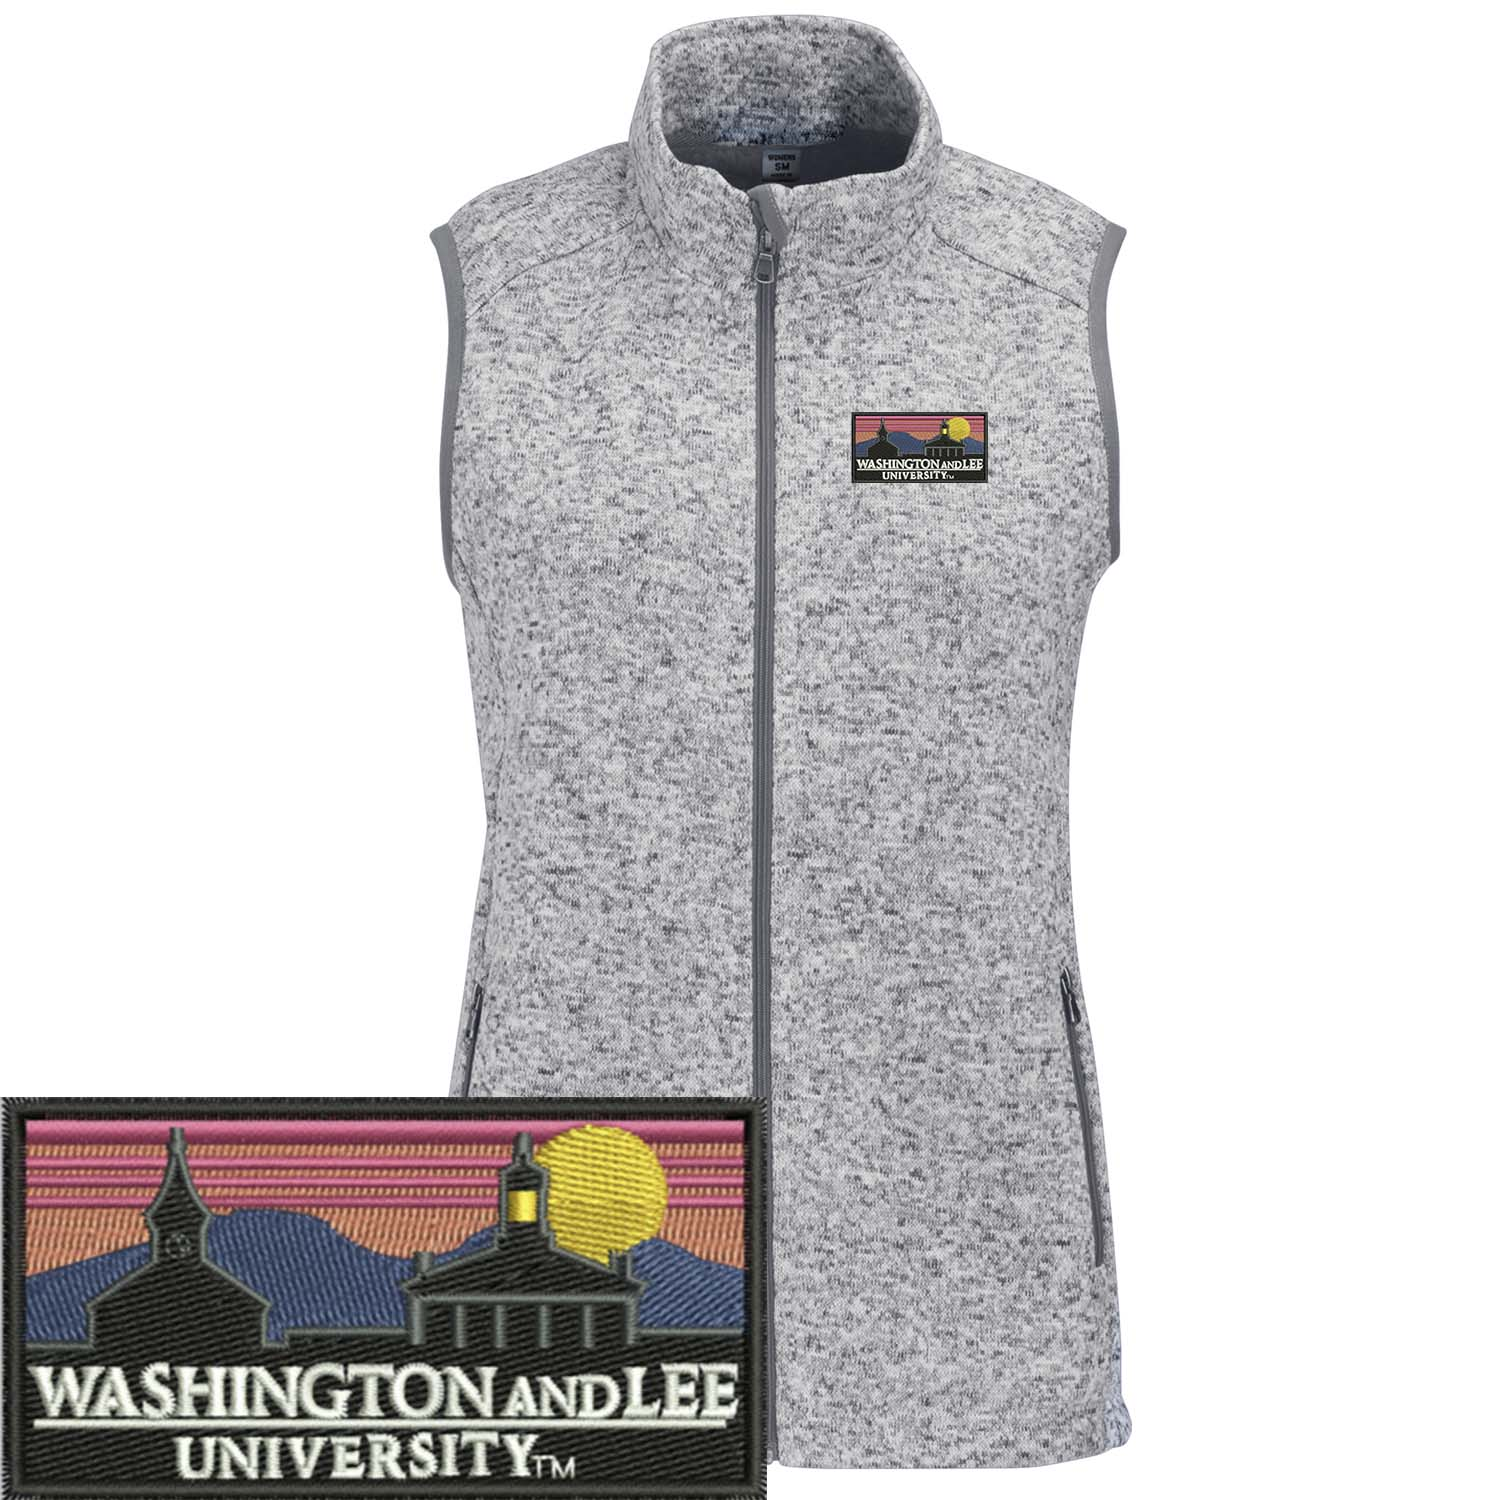 Uscape Vest, Women's